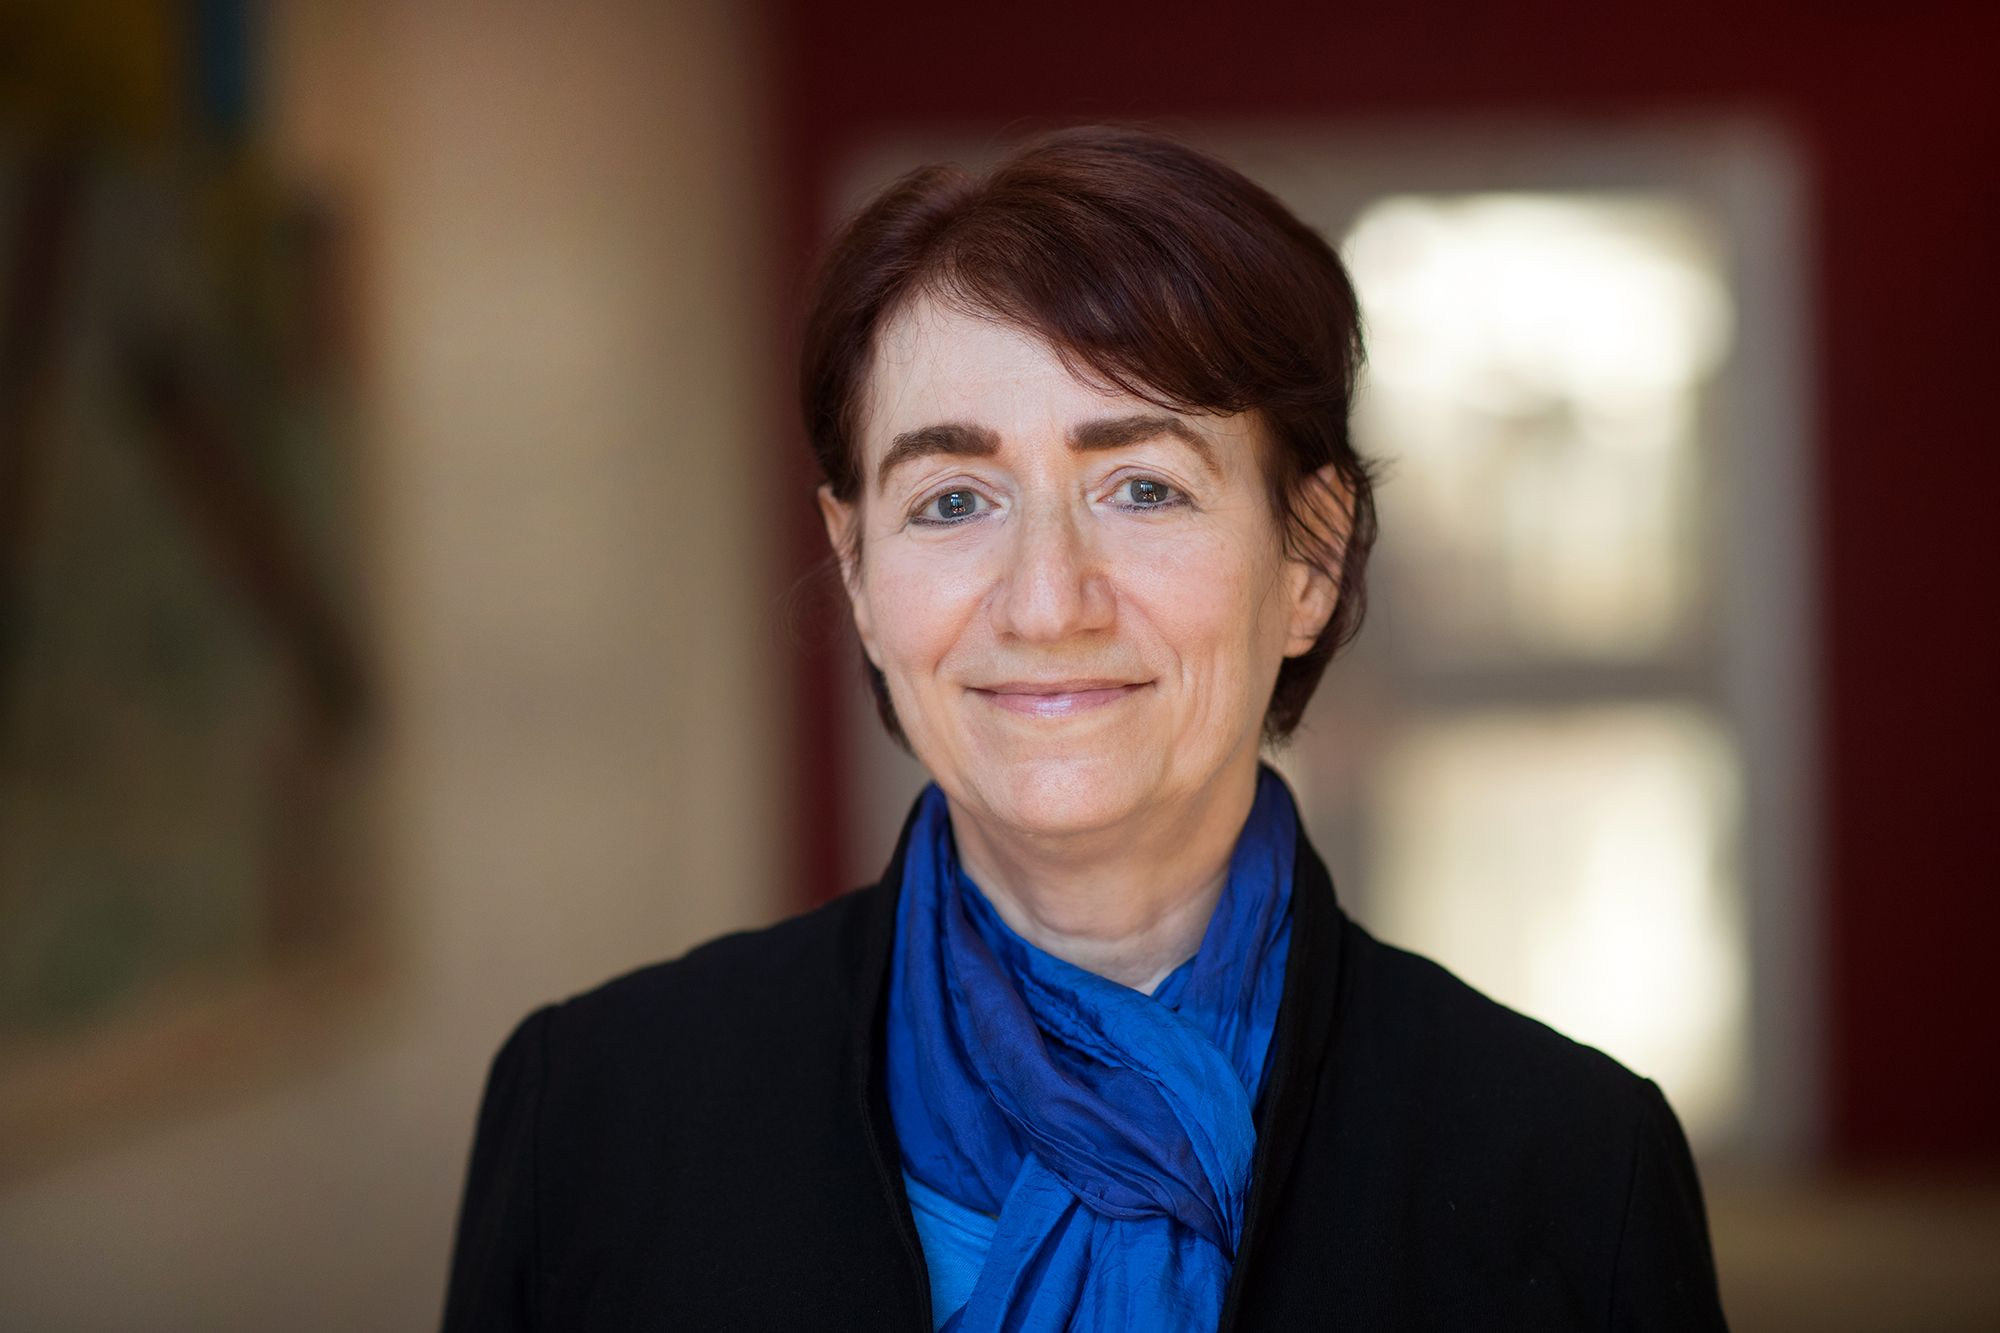 Hazel Sive named dean of Northeastern University College of Science